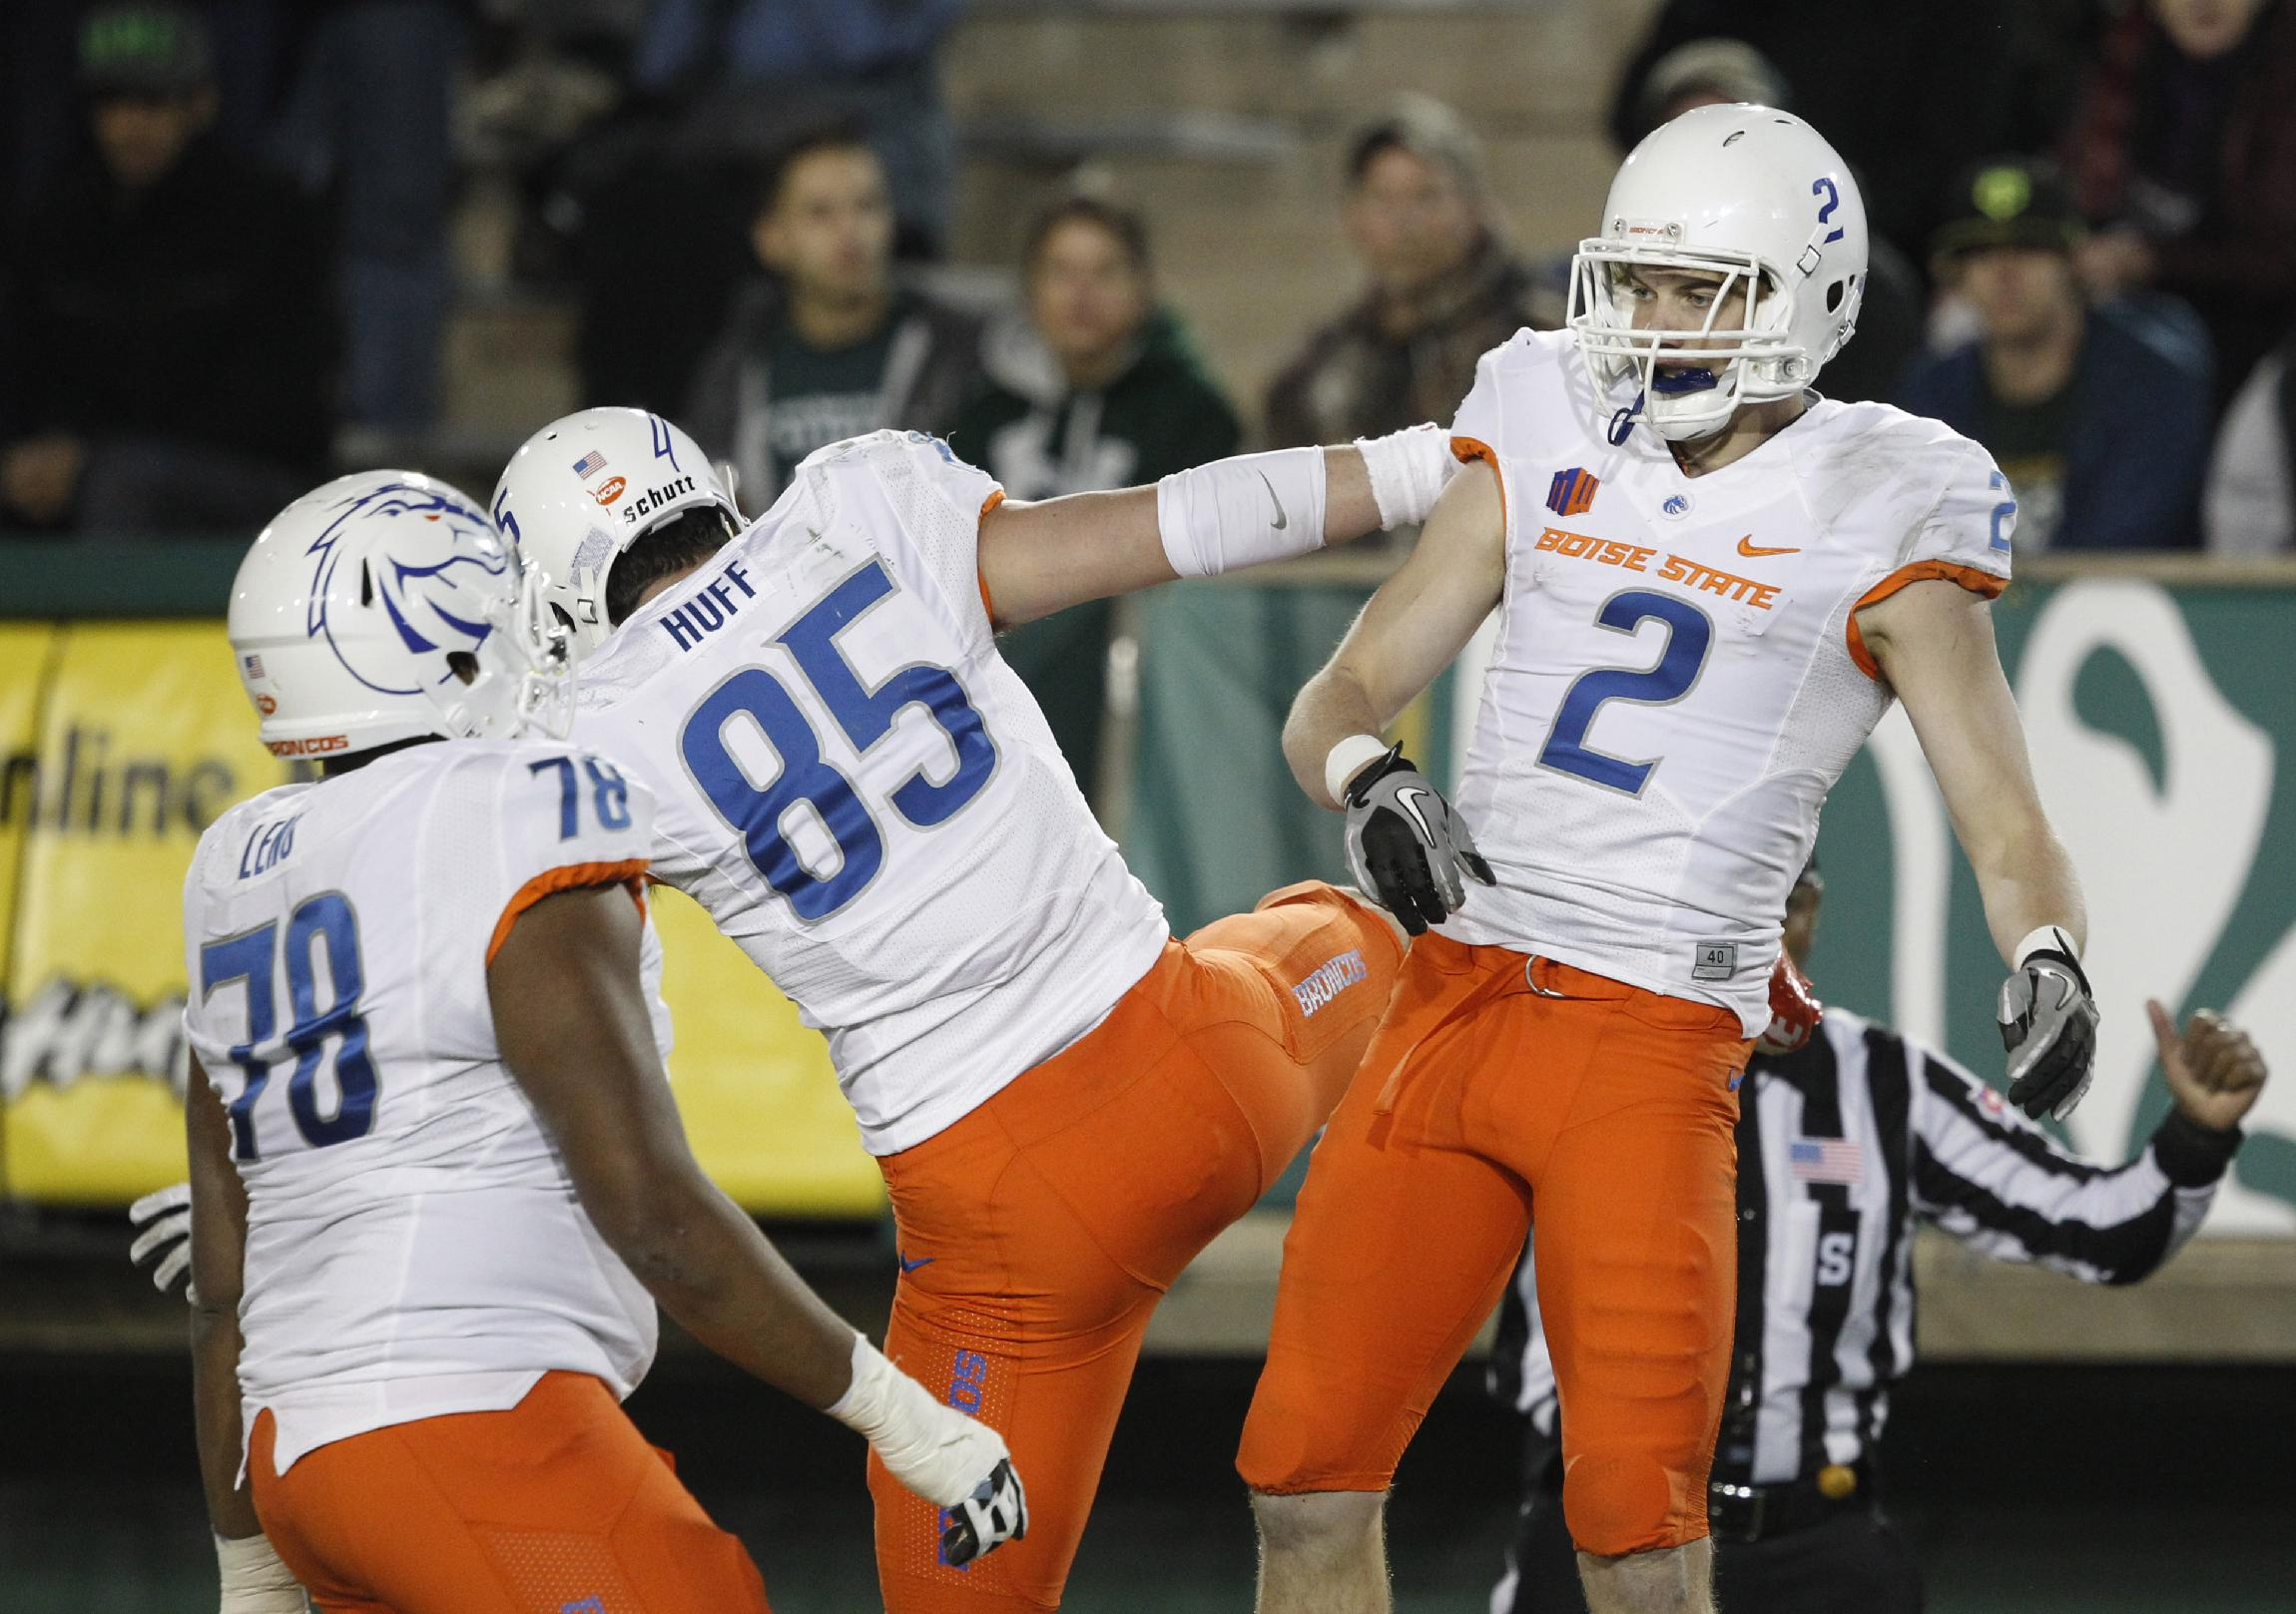 Boise State wide receiver Matt Miller, right, celebrates his touchdown reception with tight end Holden Huff (85) as offensive lineman Charles Leno Jr., front, arrives, against Colorado State in the third quarter of Boise State's 42-30 victory in an NCAA college football game in Fort Collins, Colo., on Saturday, Nov. 2, 2013